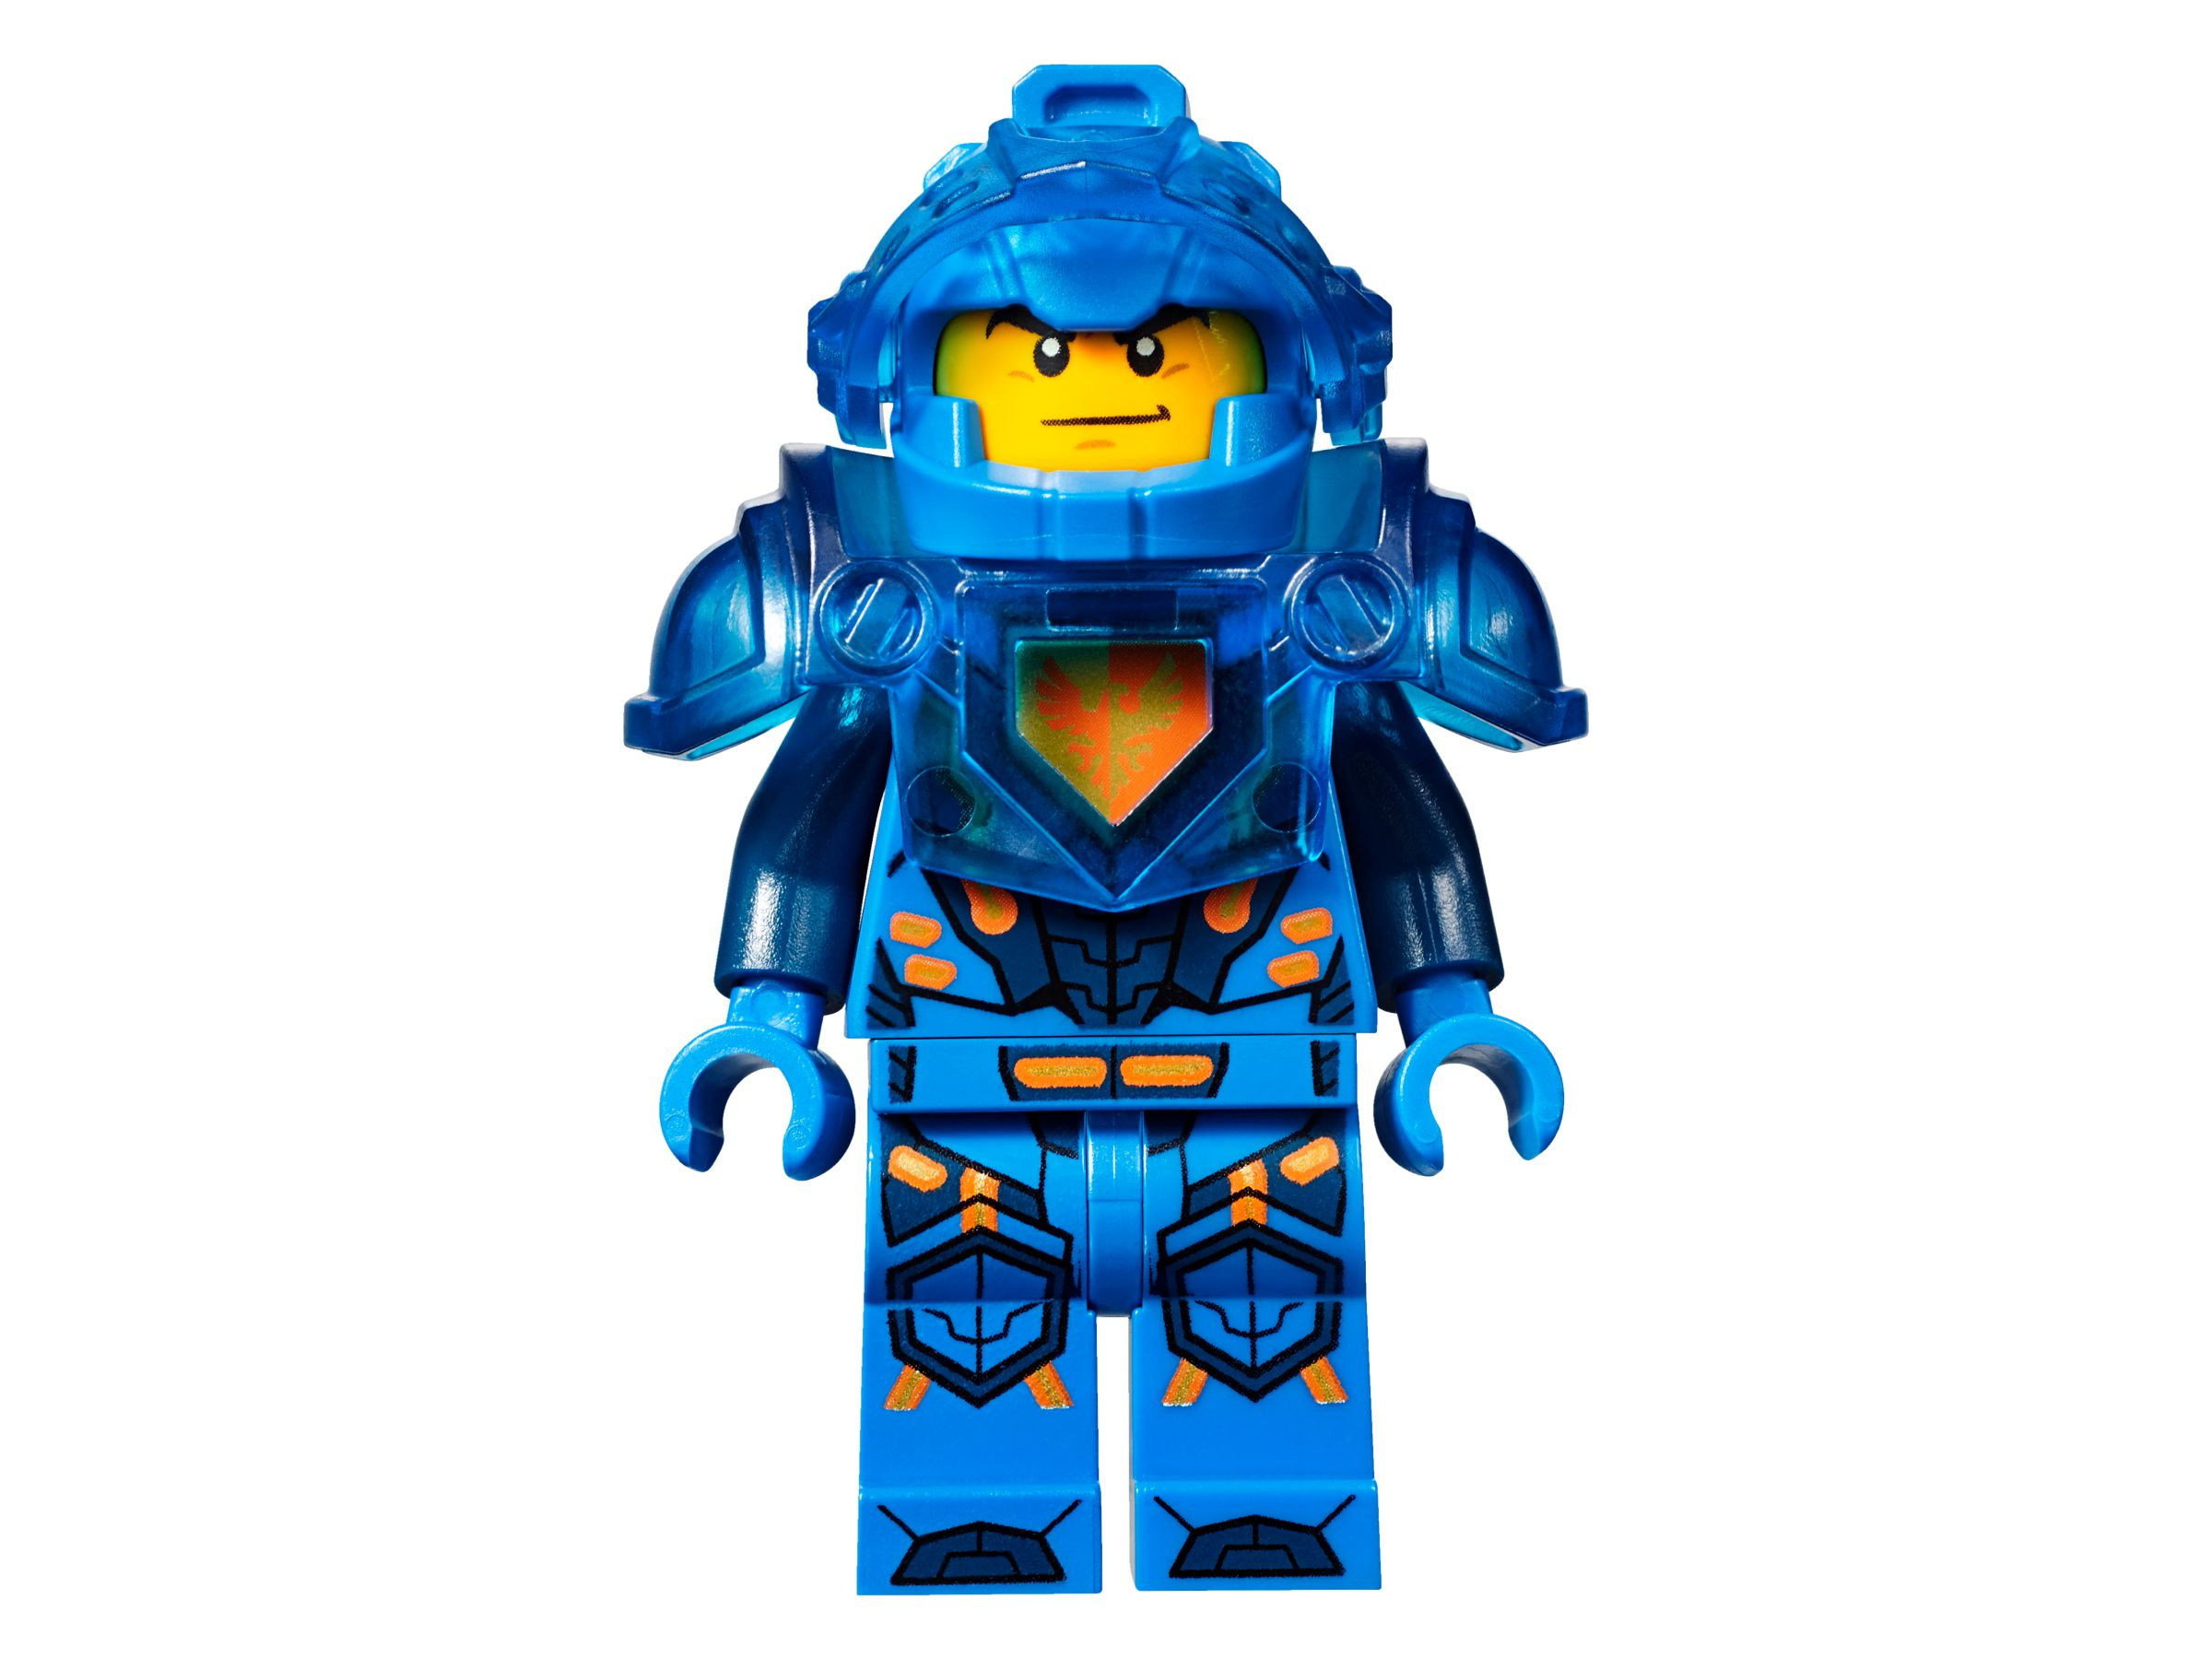 LEGO Nexo Knights 70330 Ultimativer Clay LEGO_70330_alt4.jpg